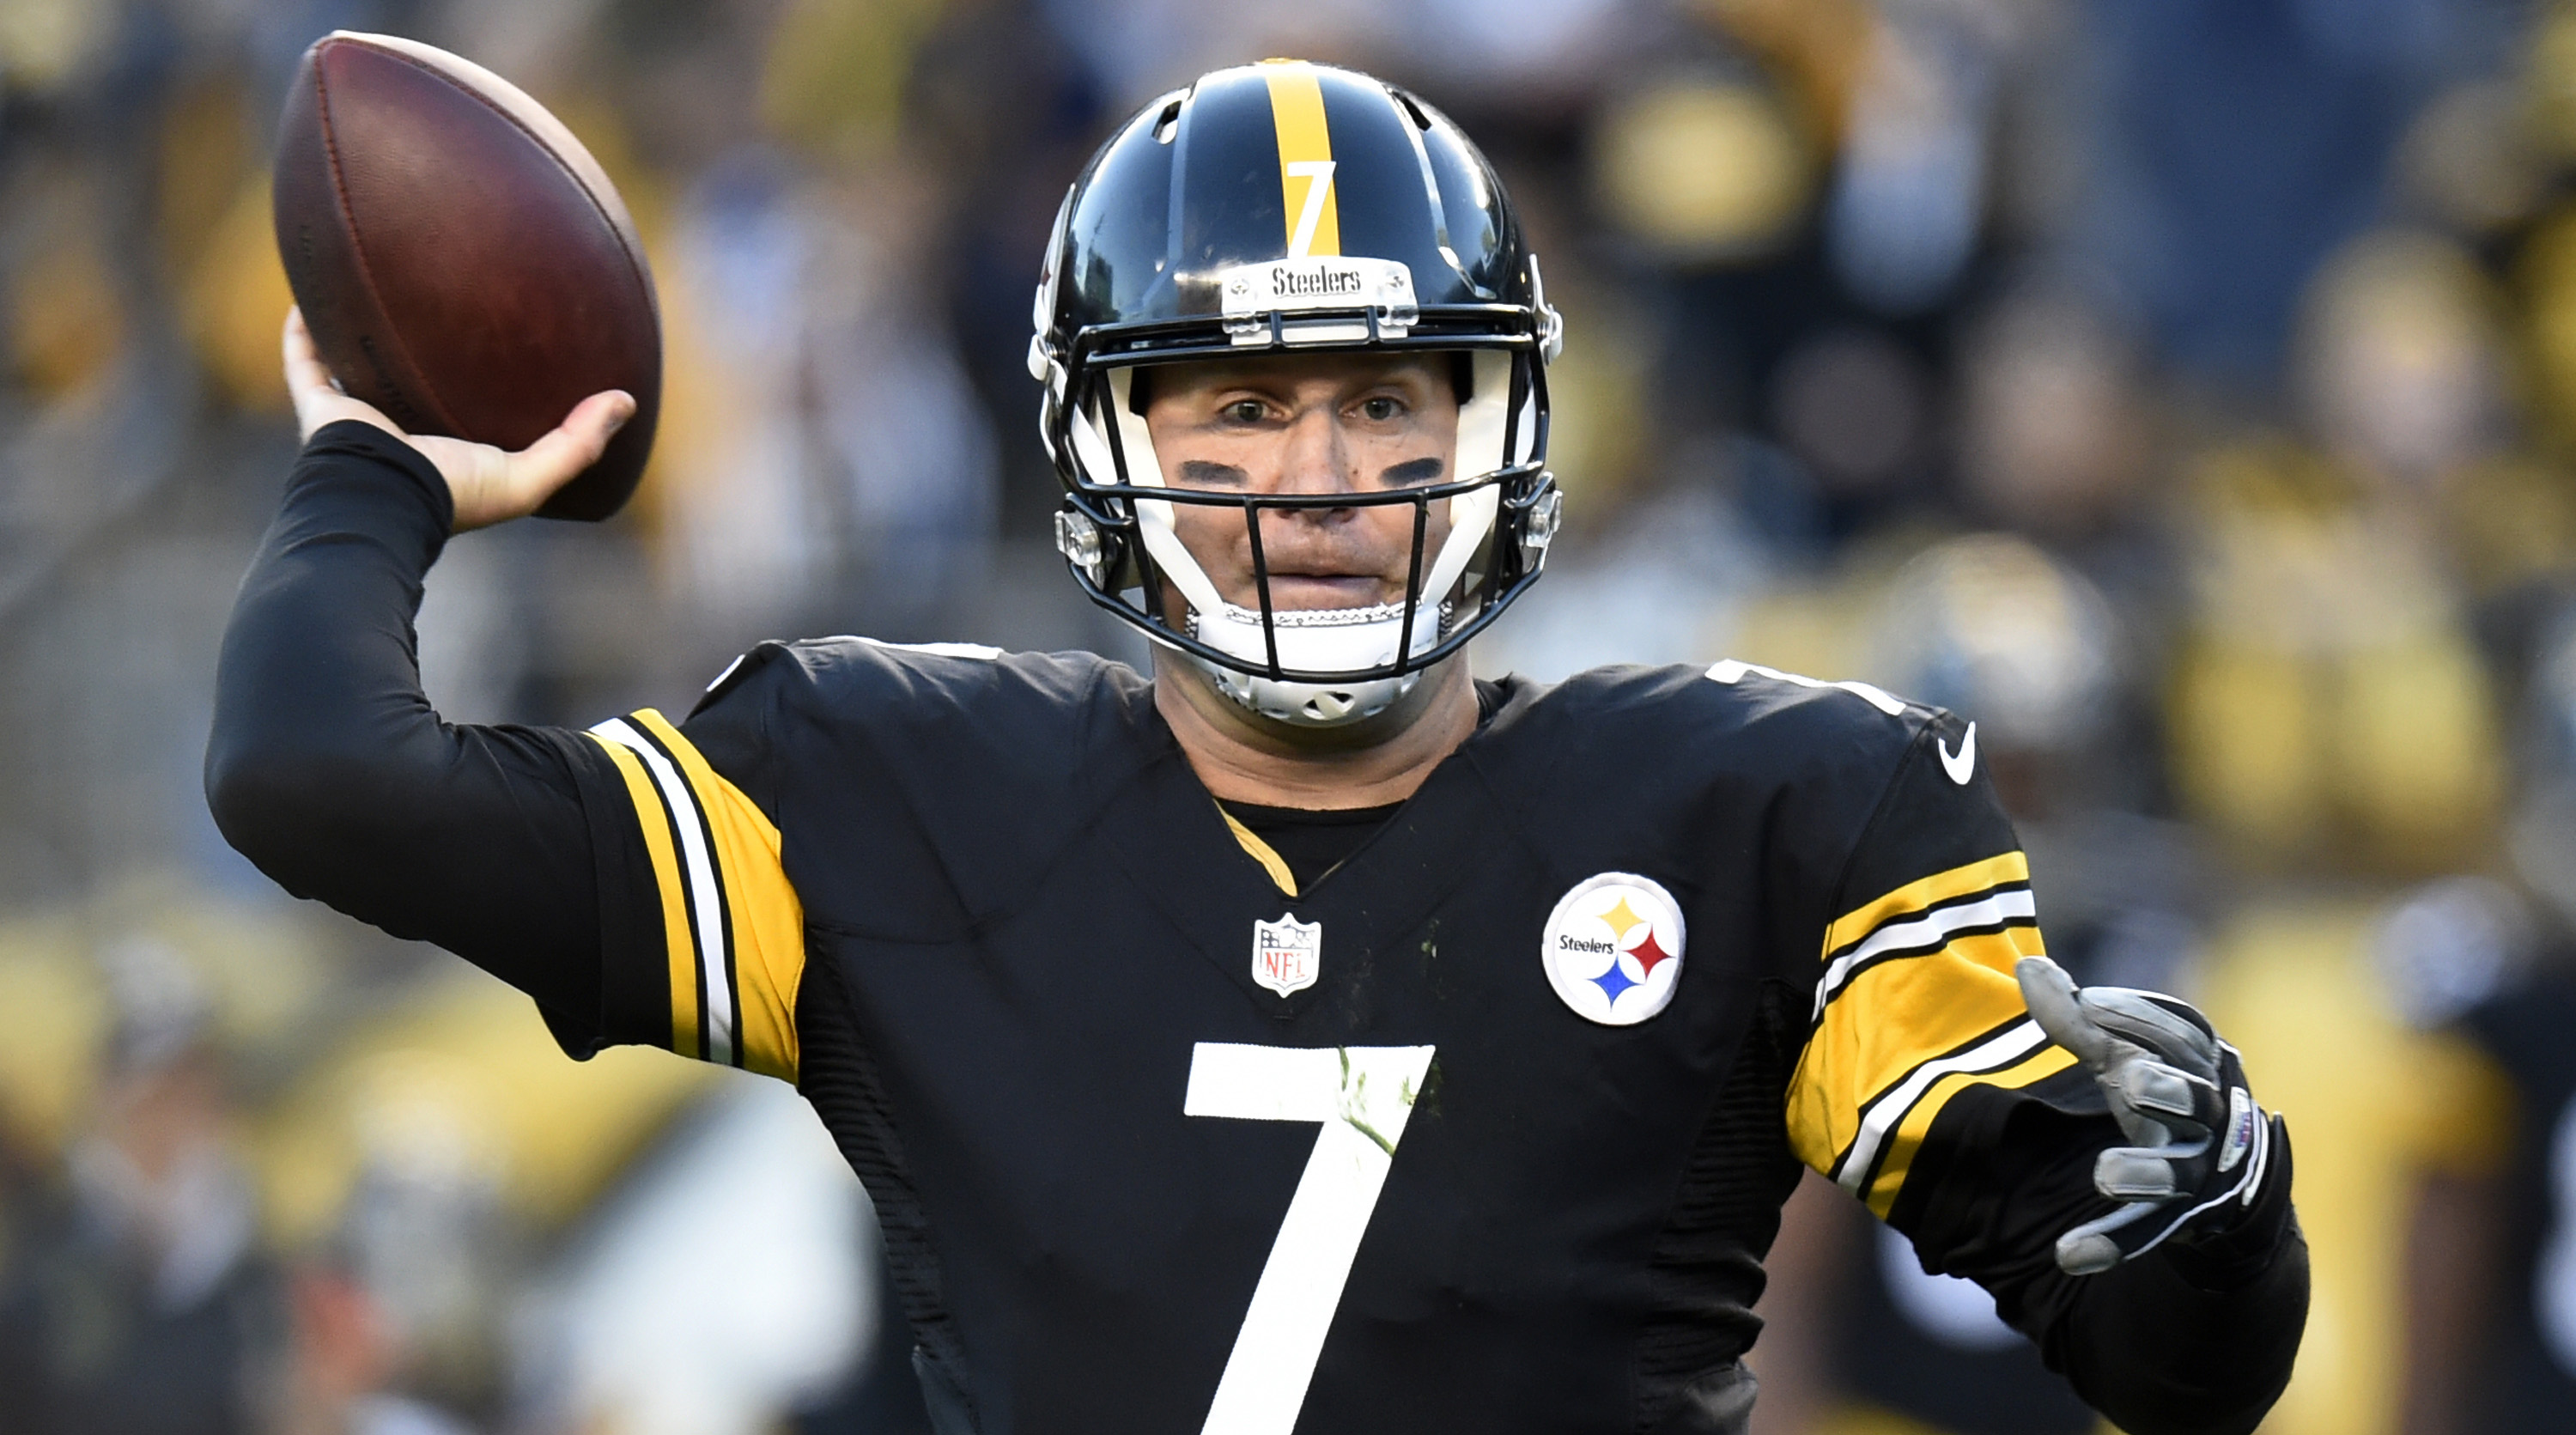 Steelers QB Ben Roethlisberger remains a polarizing figure